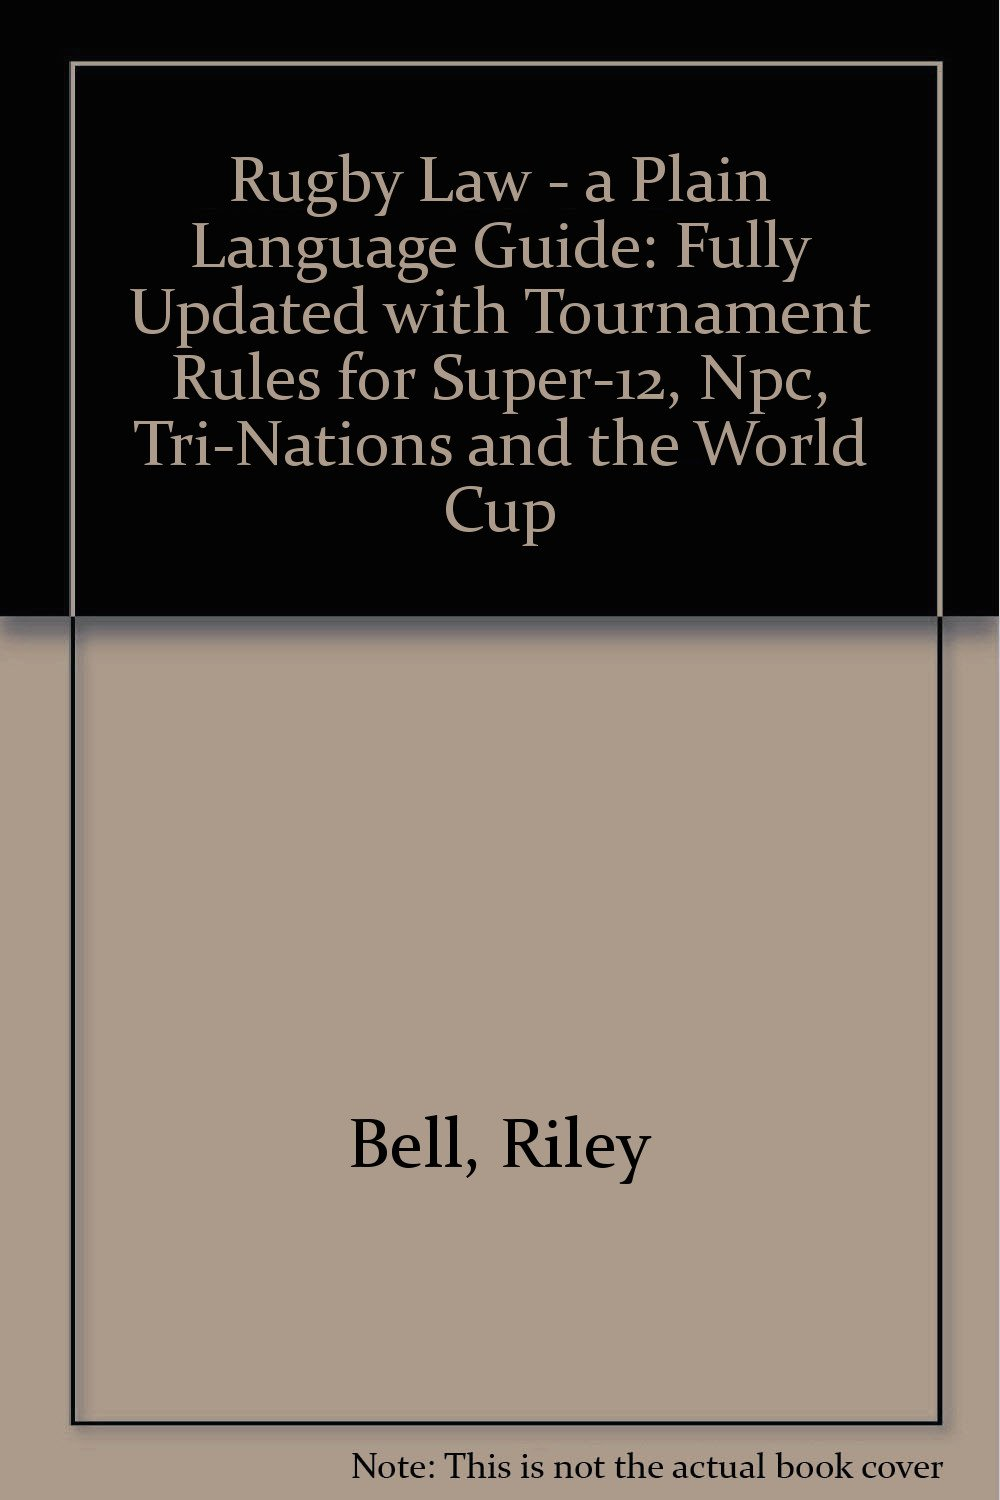 Rugby Law - a Plain Language Guide: Fully Updated with Tournament Rules for Super-12, Npc, Tri-Nations and the World Cup by Brand: Raupo Publishing (NZ) Ltd